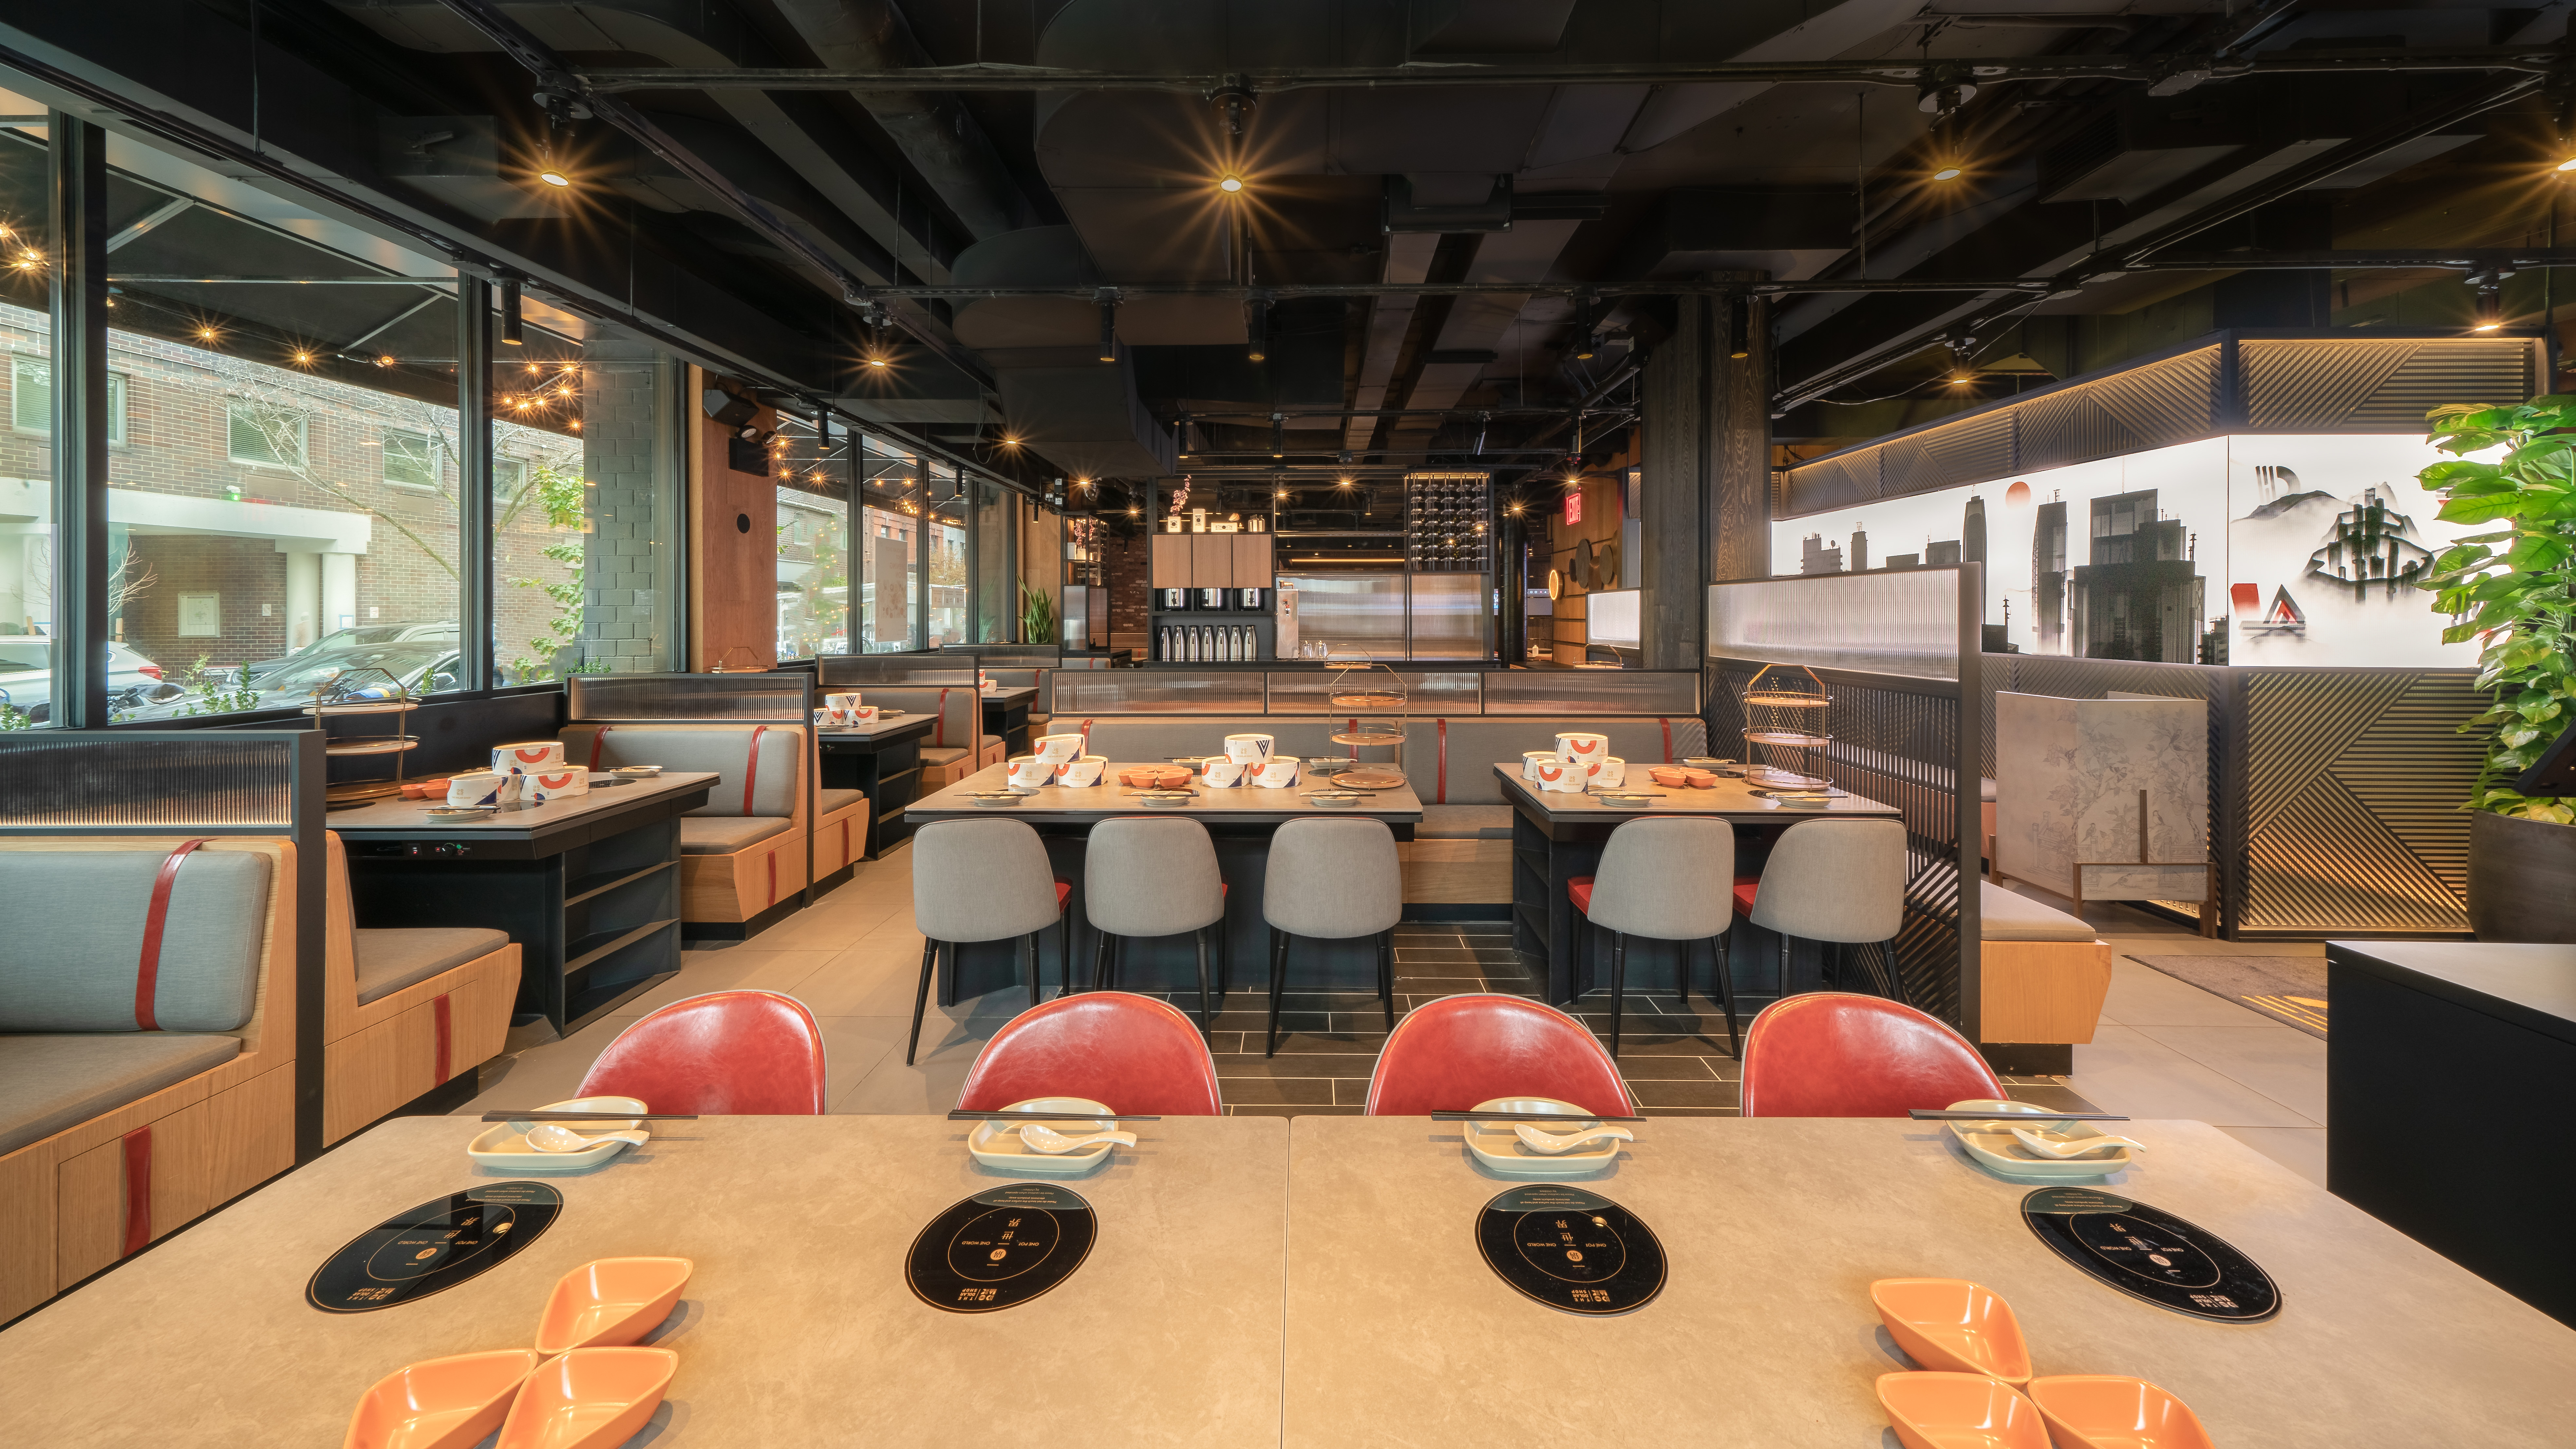 The interior of the hot pot restaurant the Dolar Shop with rows of large wooden tables and chairs